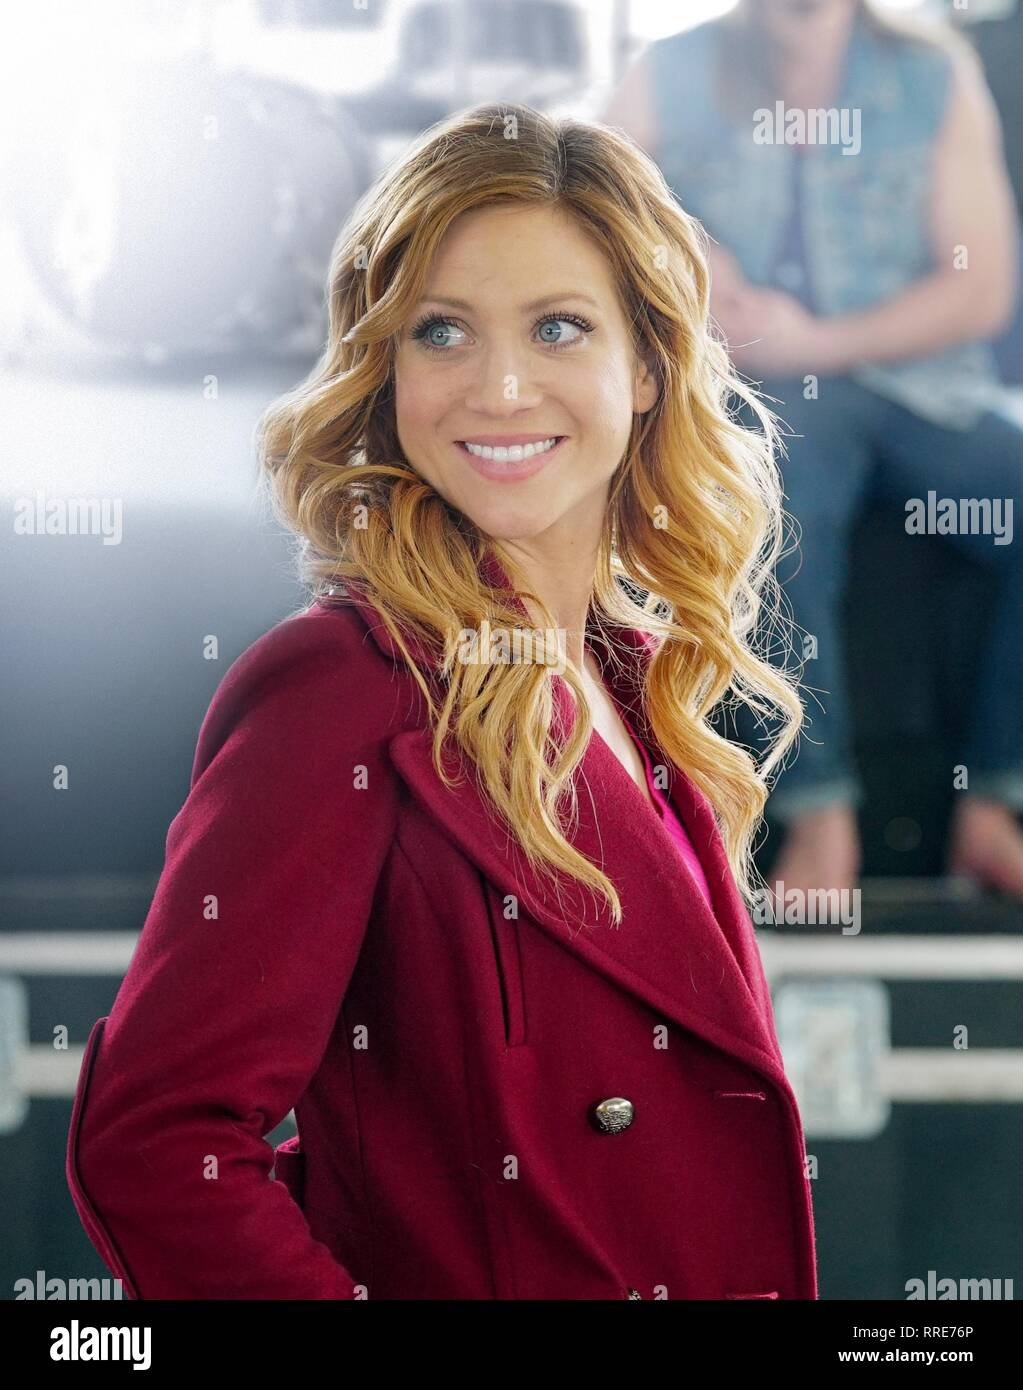 PITCH PERFECT 3, BRITTANY SNOW, 2017 - Stock Image